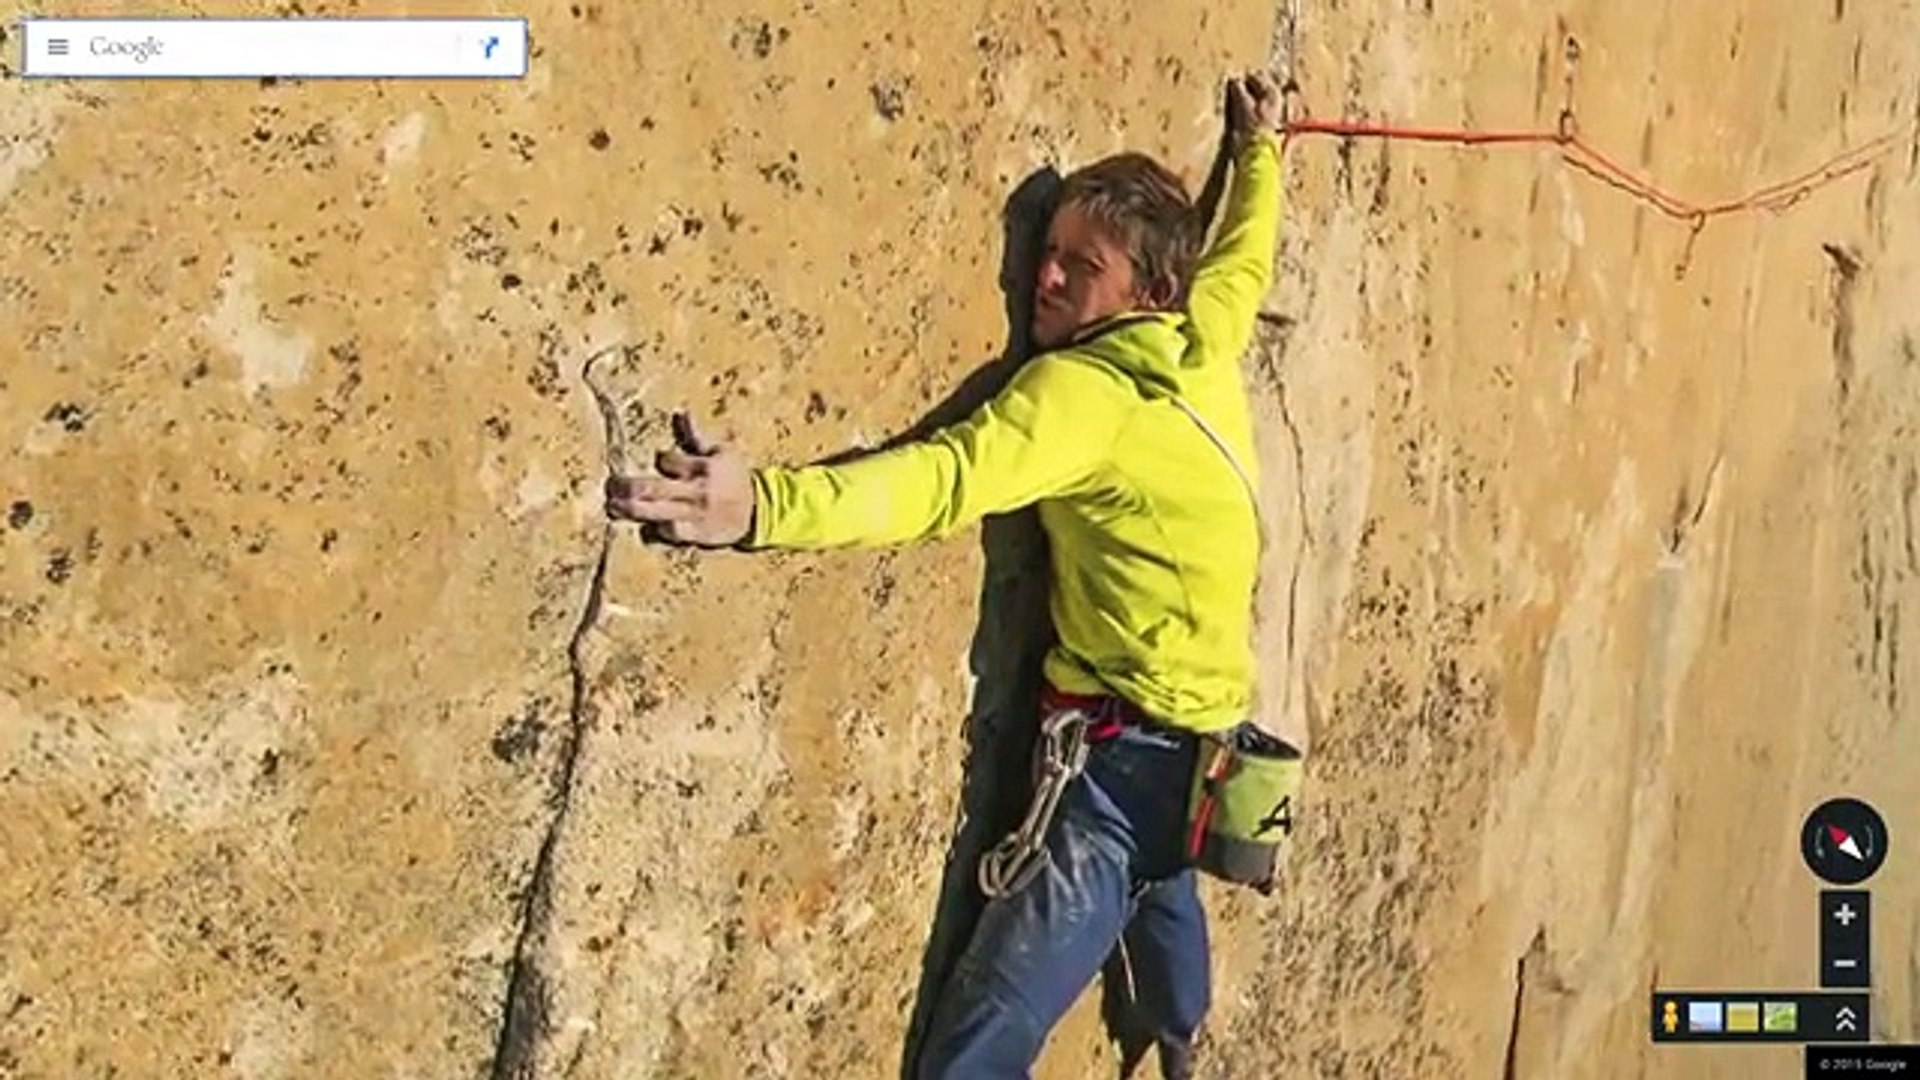 Scale Yosemite's El Capitan in Google Maps with Alex Honnold, Lynn Hill, and Tommy Caldwell,